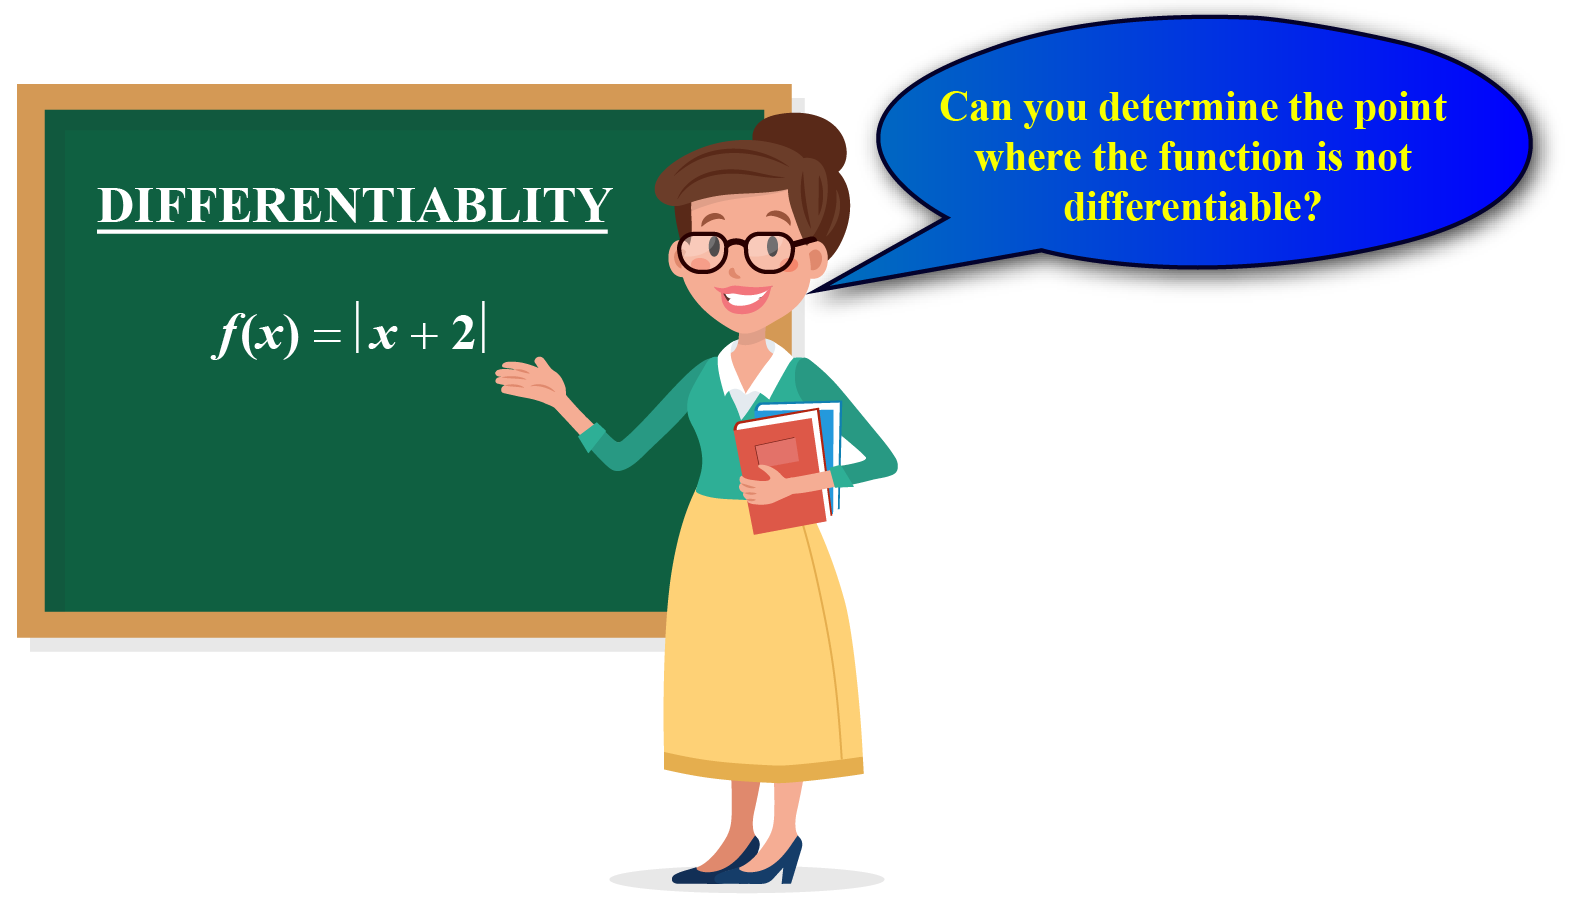 Find the differentiability of the given function